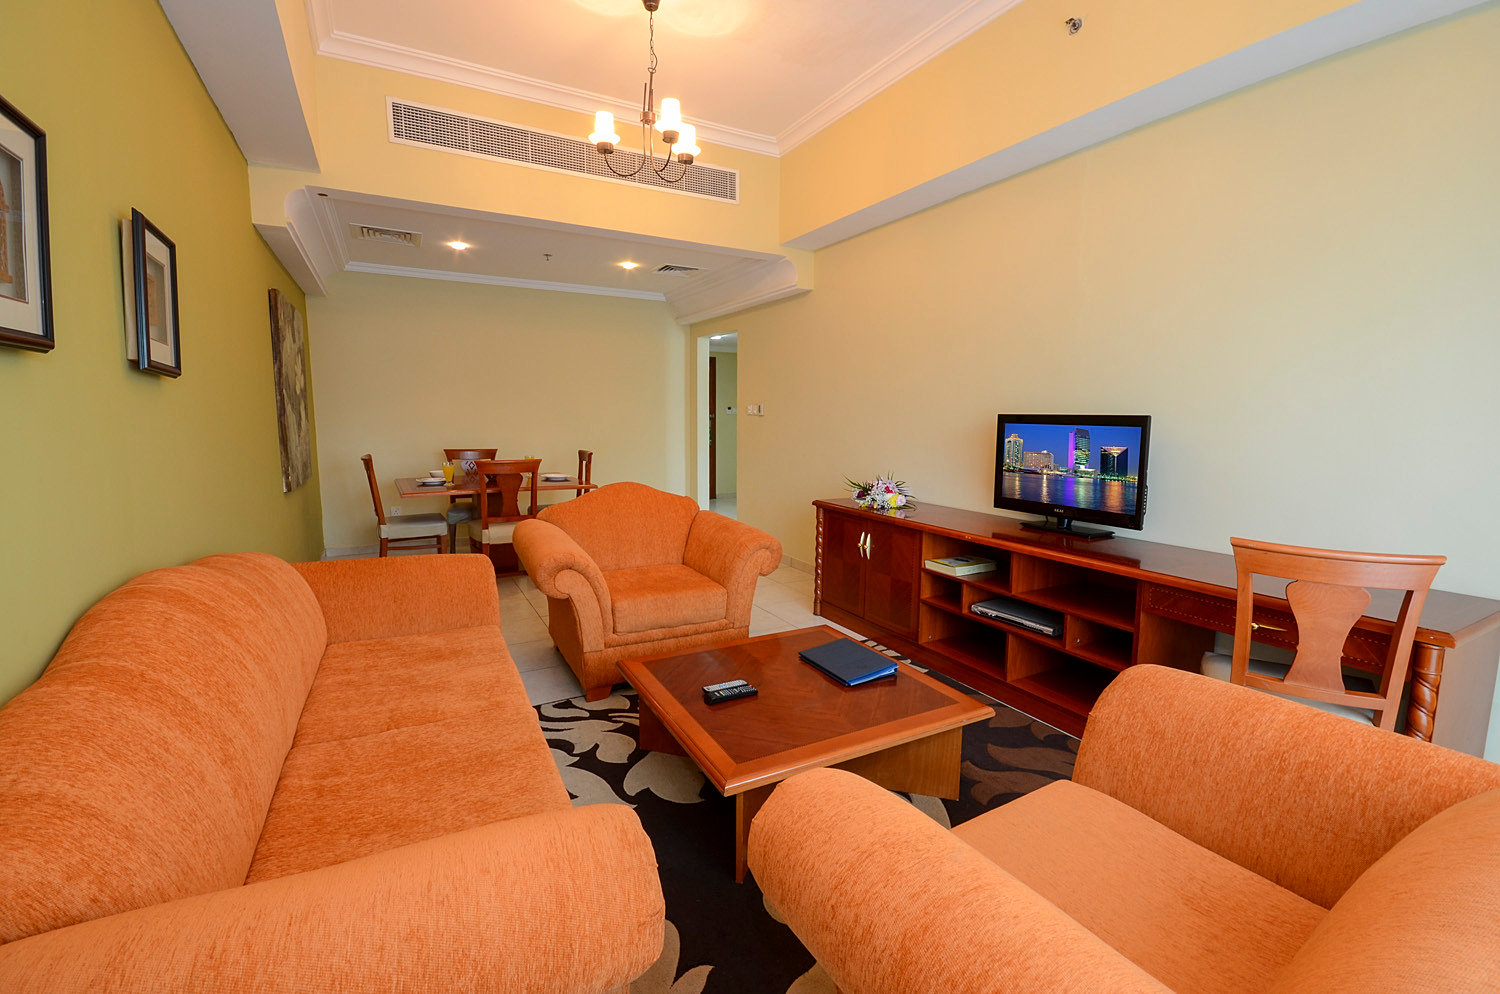 Grand midwest hotels apartments in dubai your first for 0 bedroom apartment